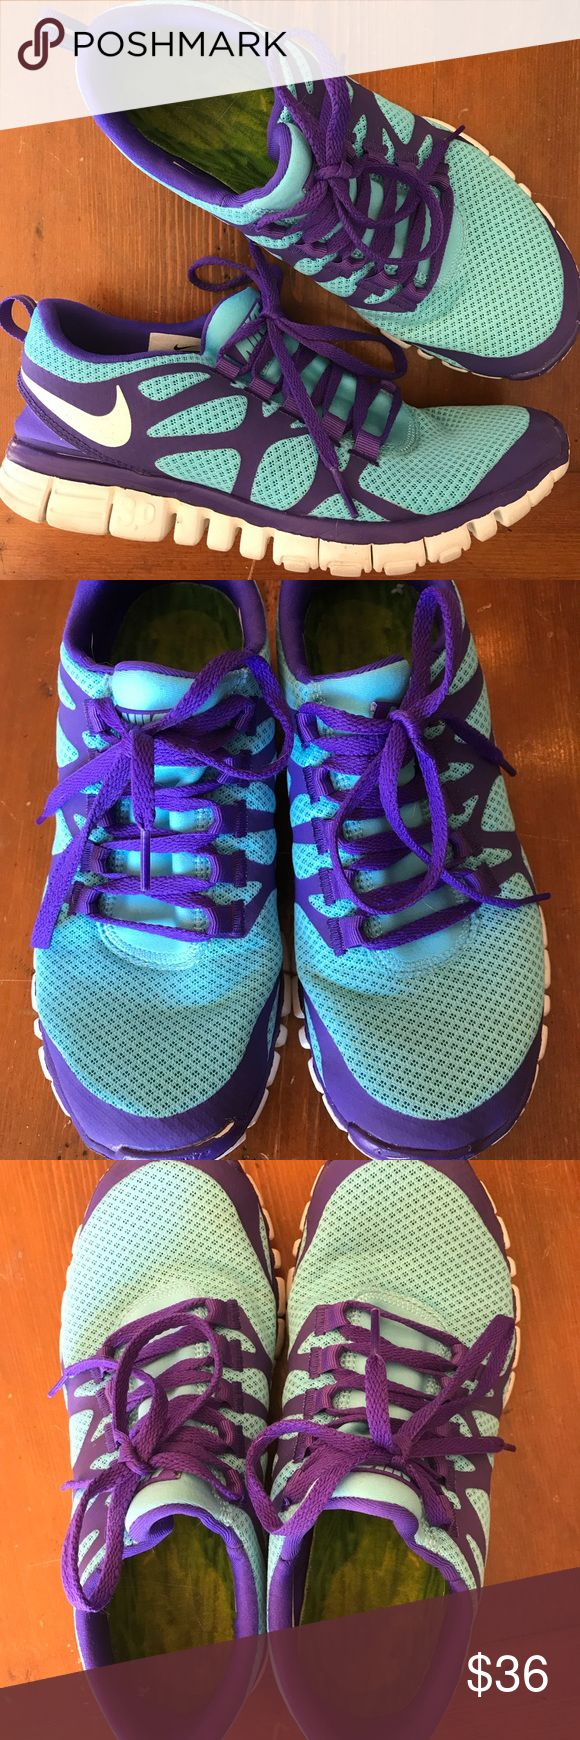 Nike Free 3.0 Women's Nike Free 3.0 shoes. Purple and teal. Good condition, worn only a handful of times. Lots of life left. Size 9. Nike Shoes Athletic Shoes